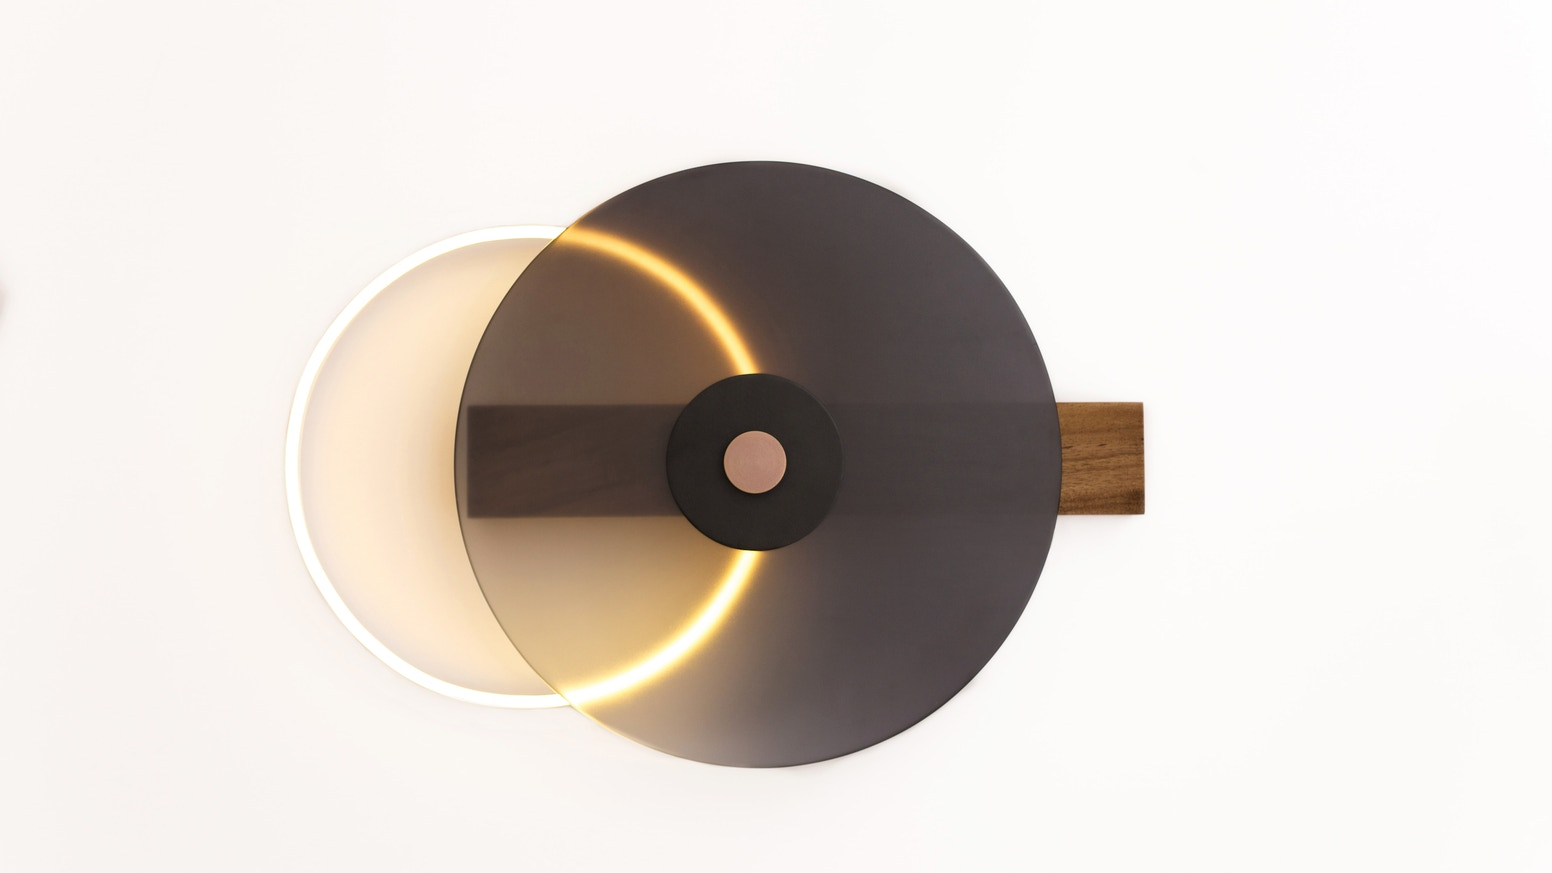 Projects of earth lmpara binomios by comite de proyectos kickstarter a wall lamp that eludes an eclipse as it increases the intensity of its light by moving the frontal screen towards the neon led ring aloadofball Images